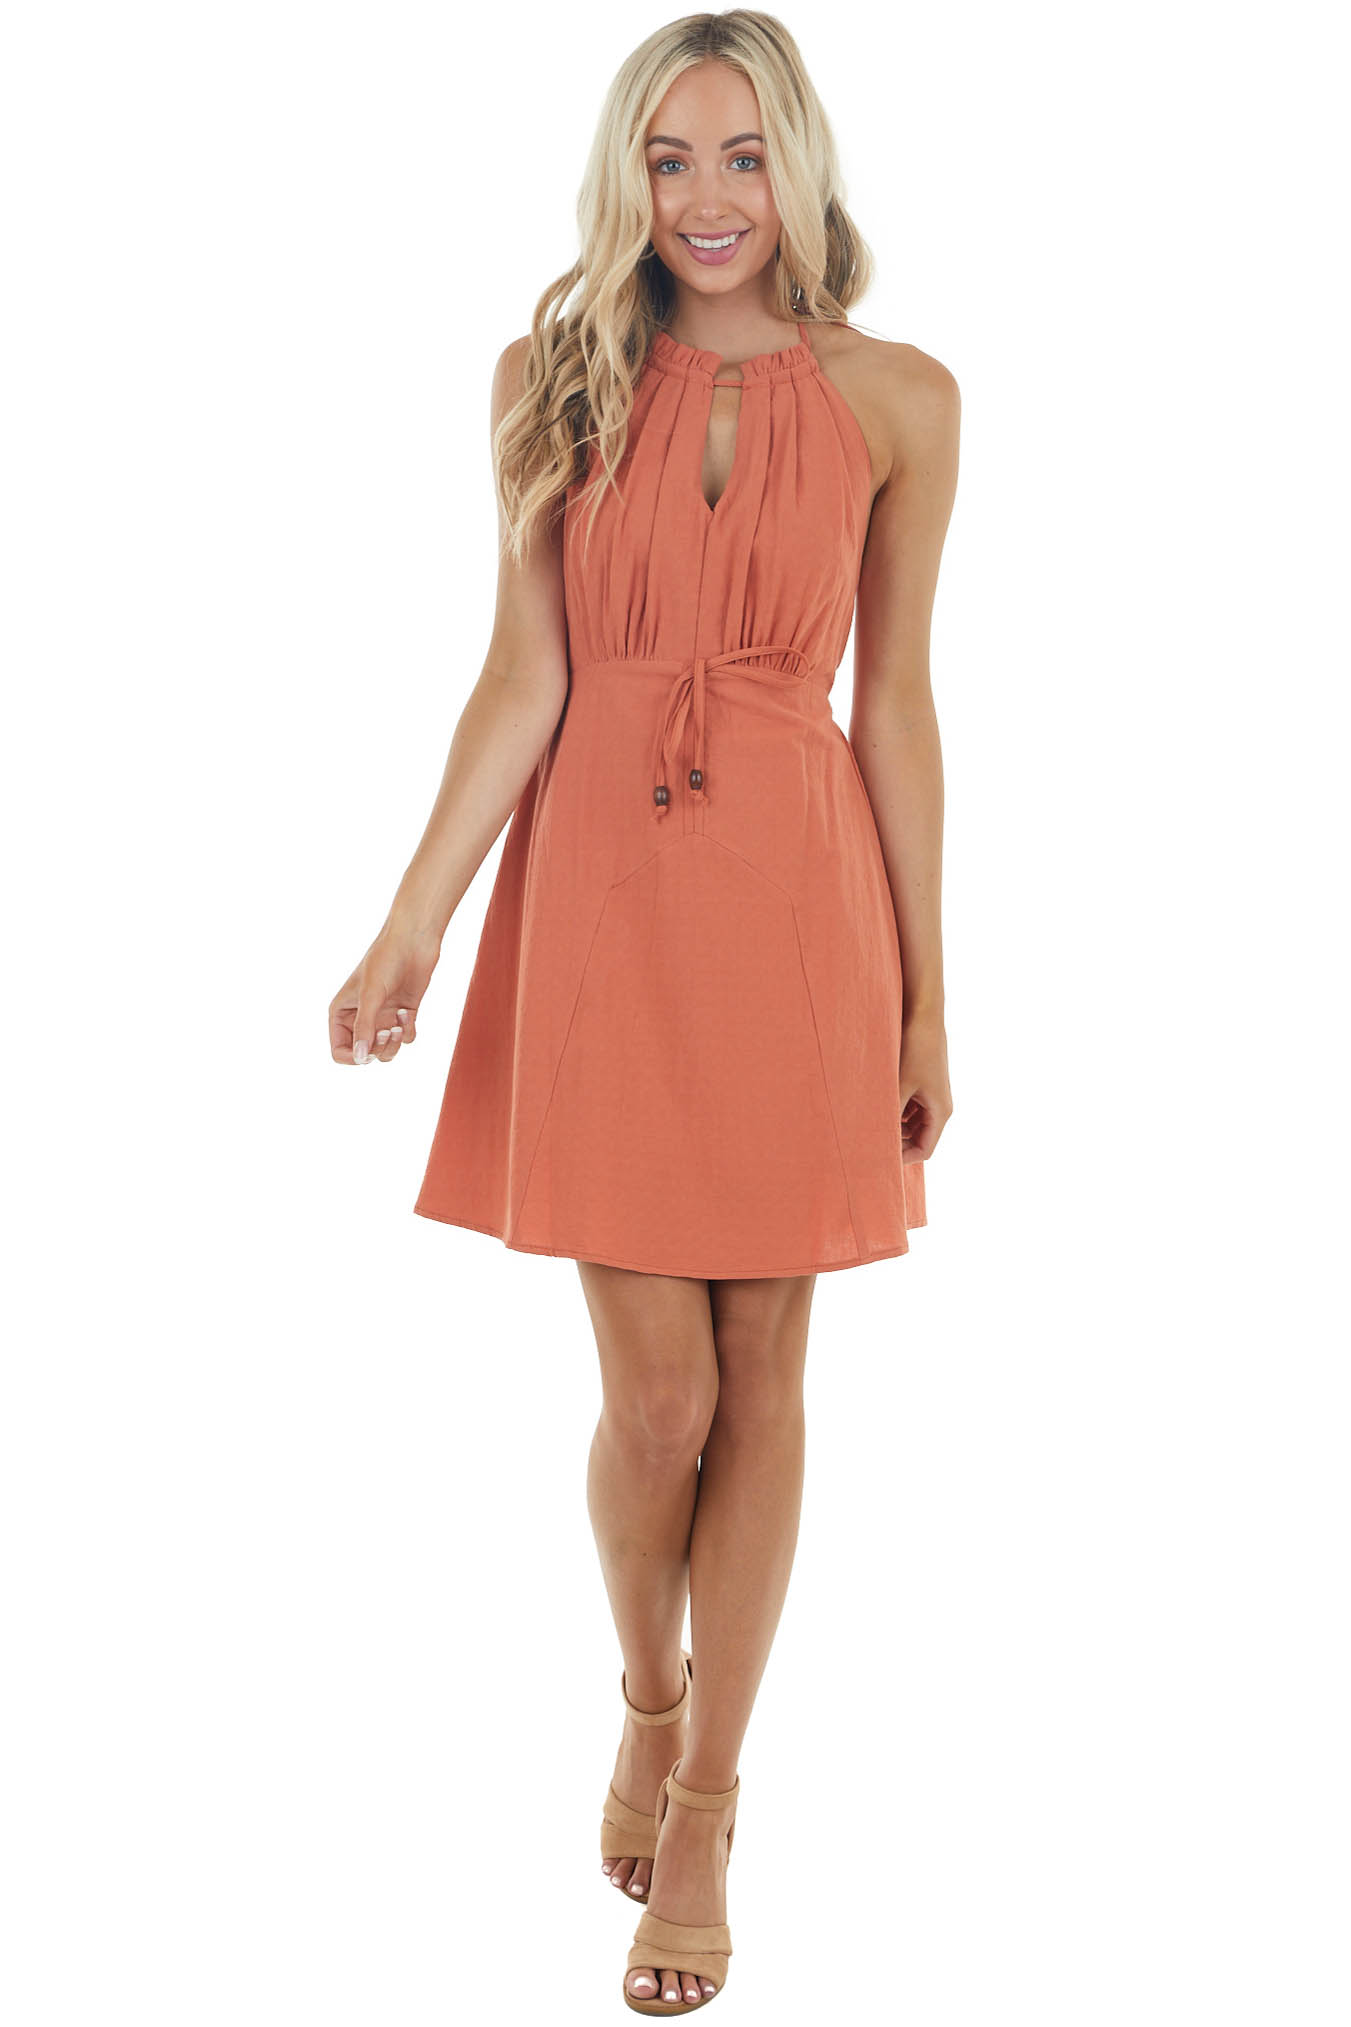 Marmalade Woven Halter Neck Short Dress with Smocked Back